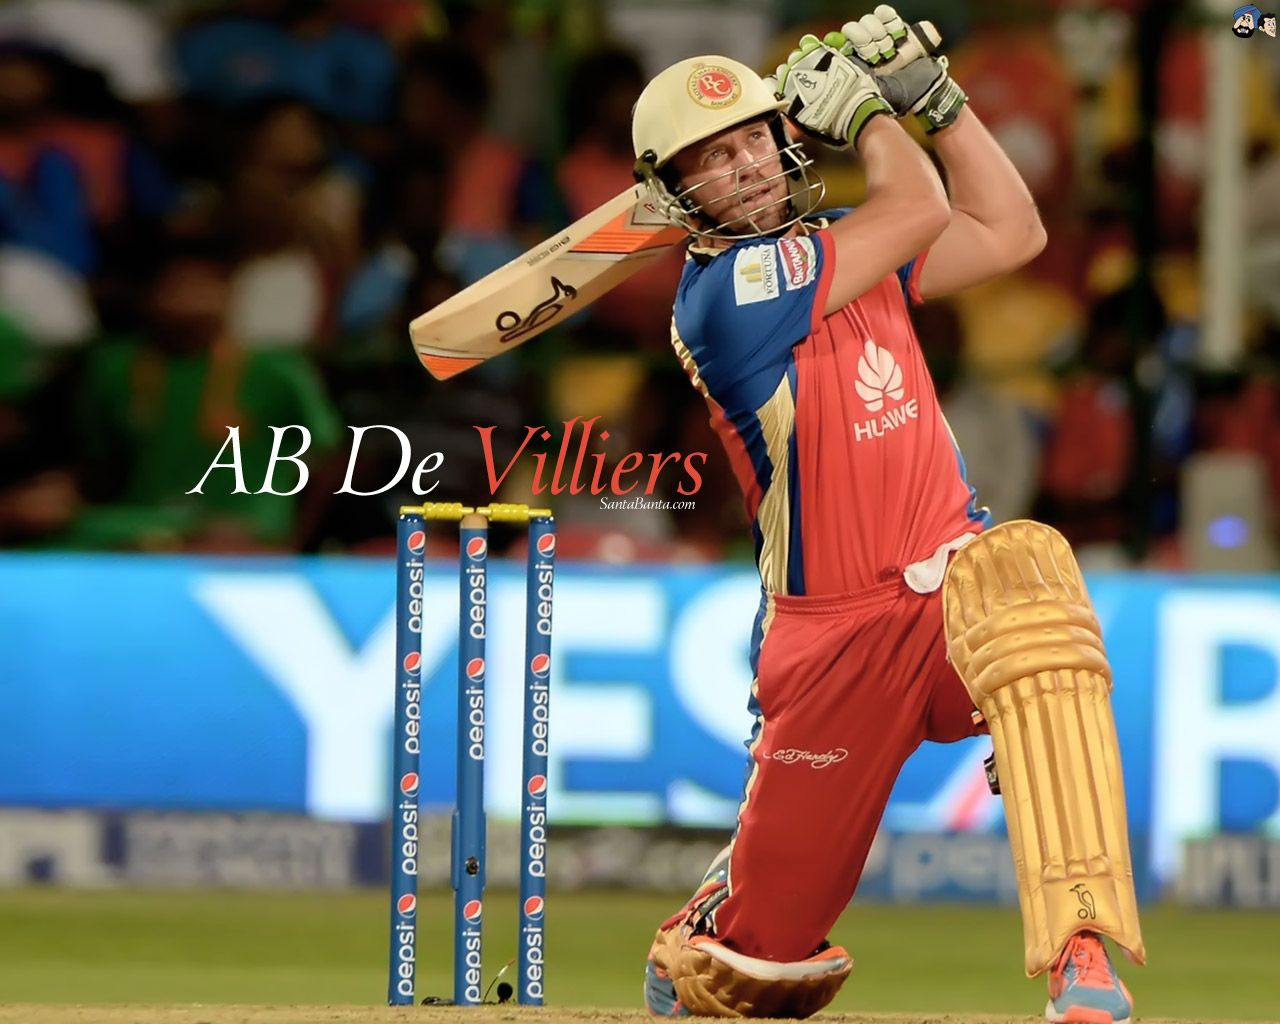 Mr.360 , A famous South African Cricketer AB De